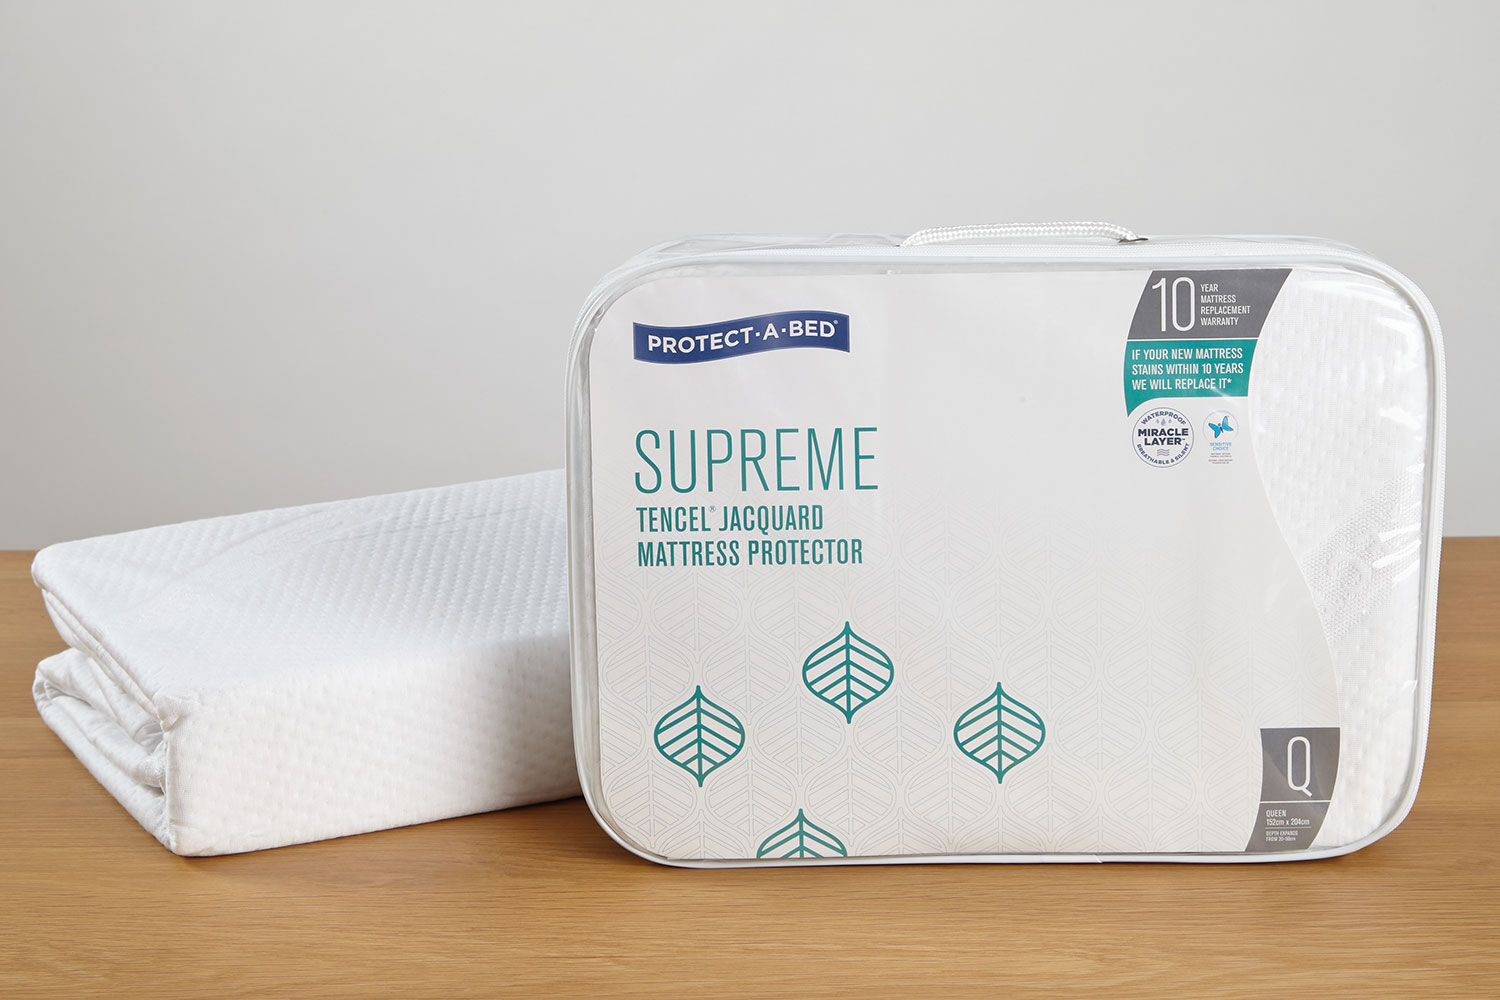 Supreme Mattress Protector by Protect-A-Bed at Harvey Norman New Zealand